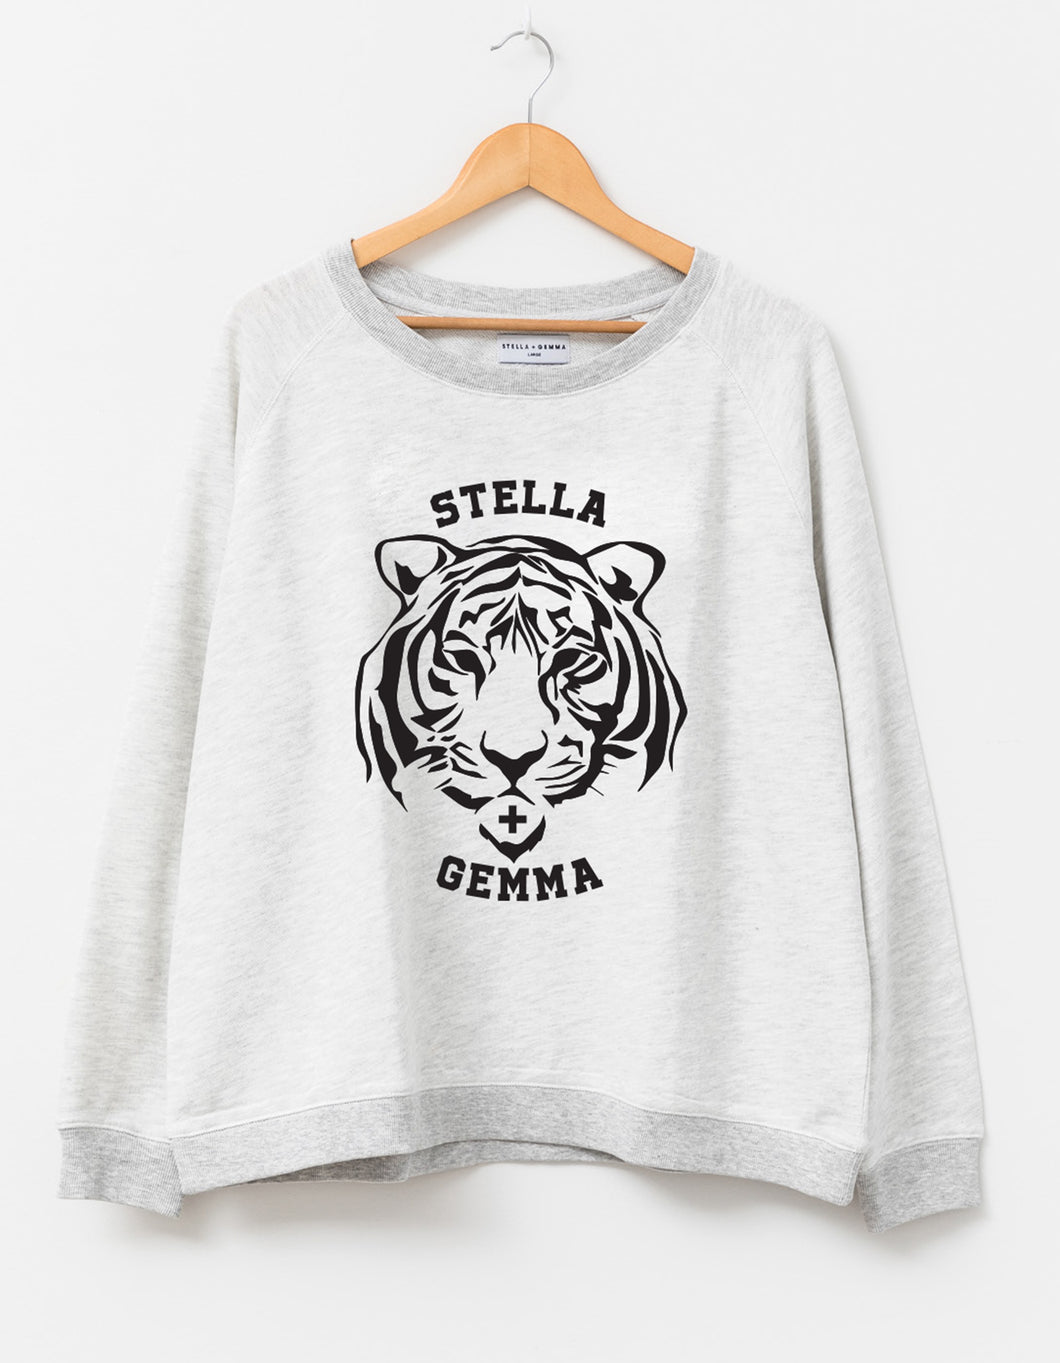 Stella + Gemma Sweater  - Snow Charcoal Flocked Tiger